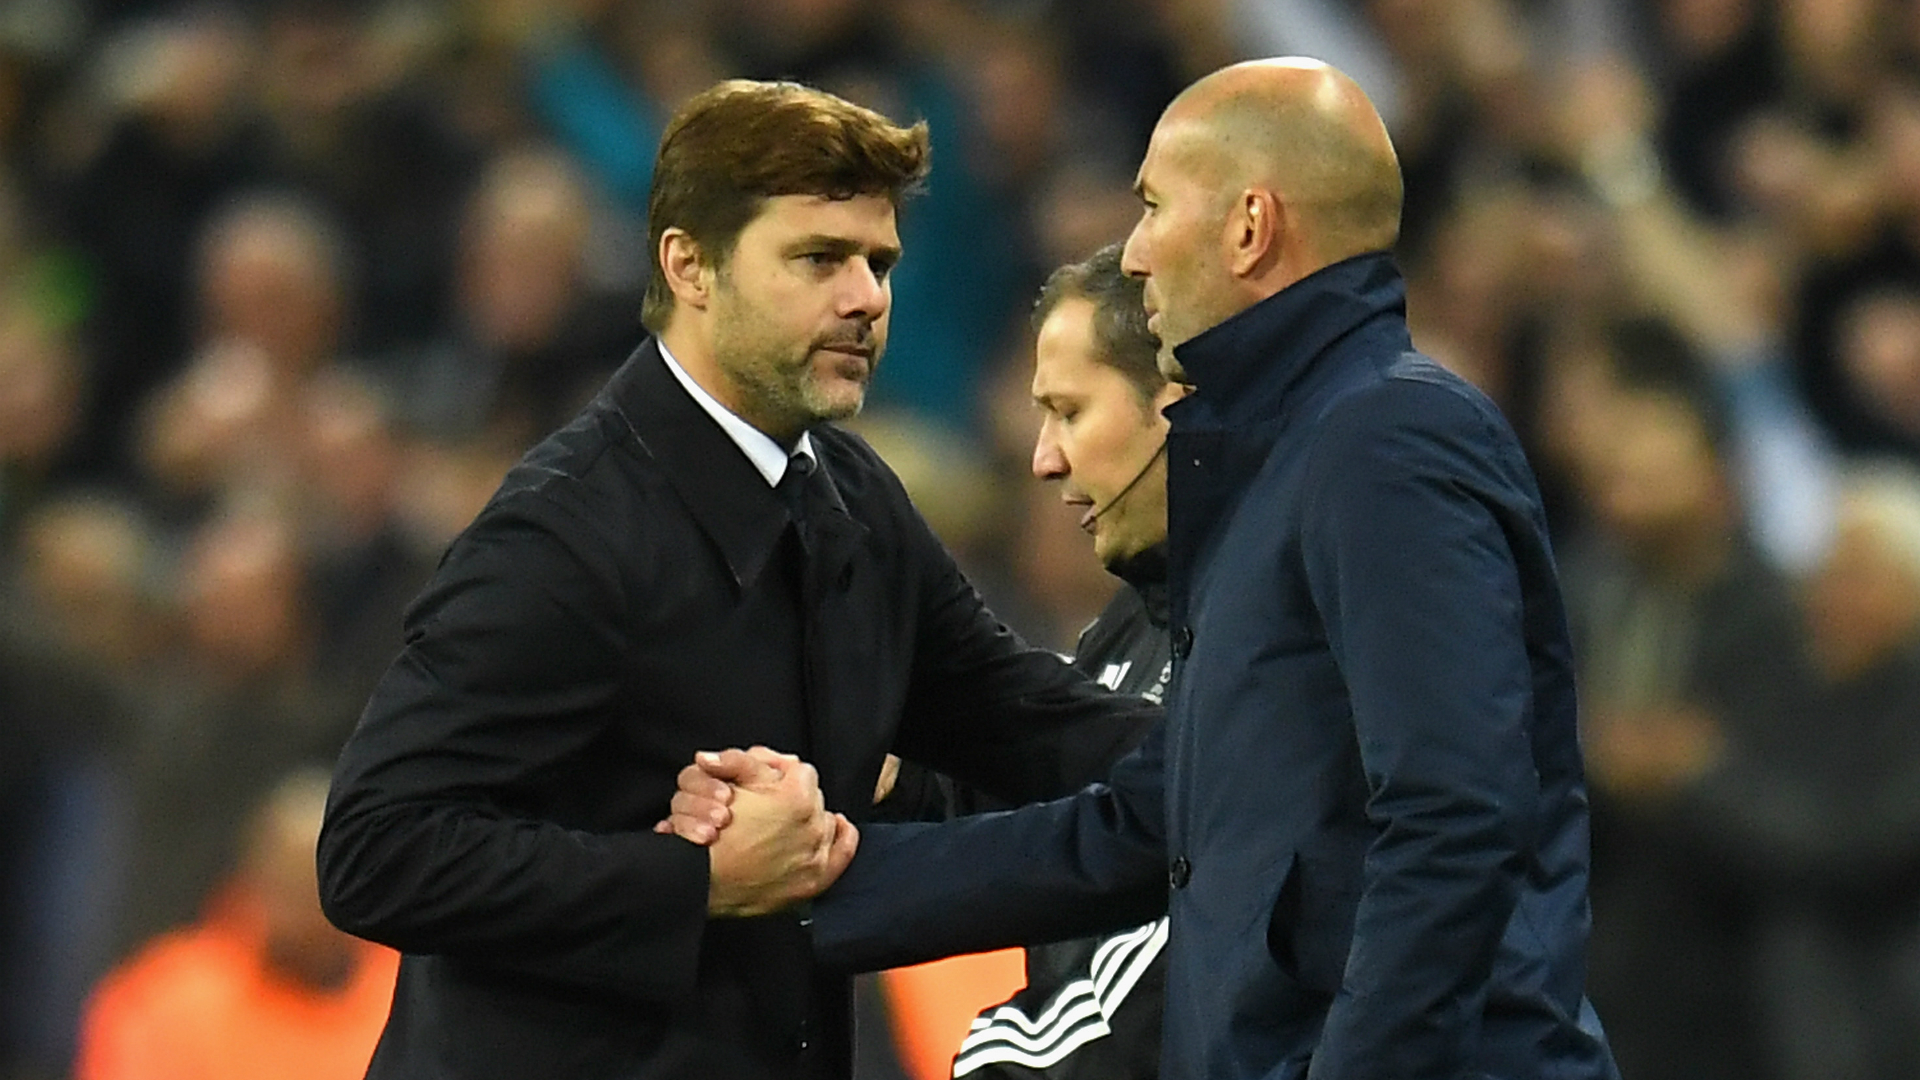 Tottenham dismissed Mauricio Pochettino last year, but he did not seem to regret turning down Real Madrid in 2018.